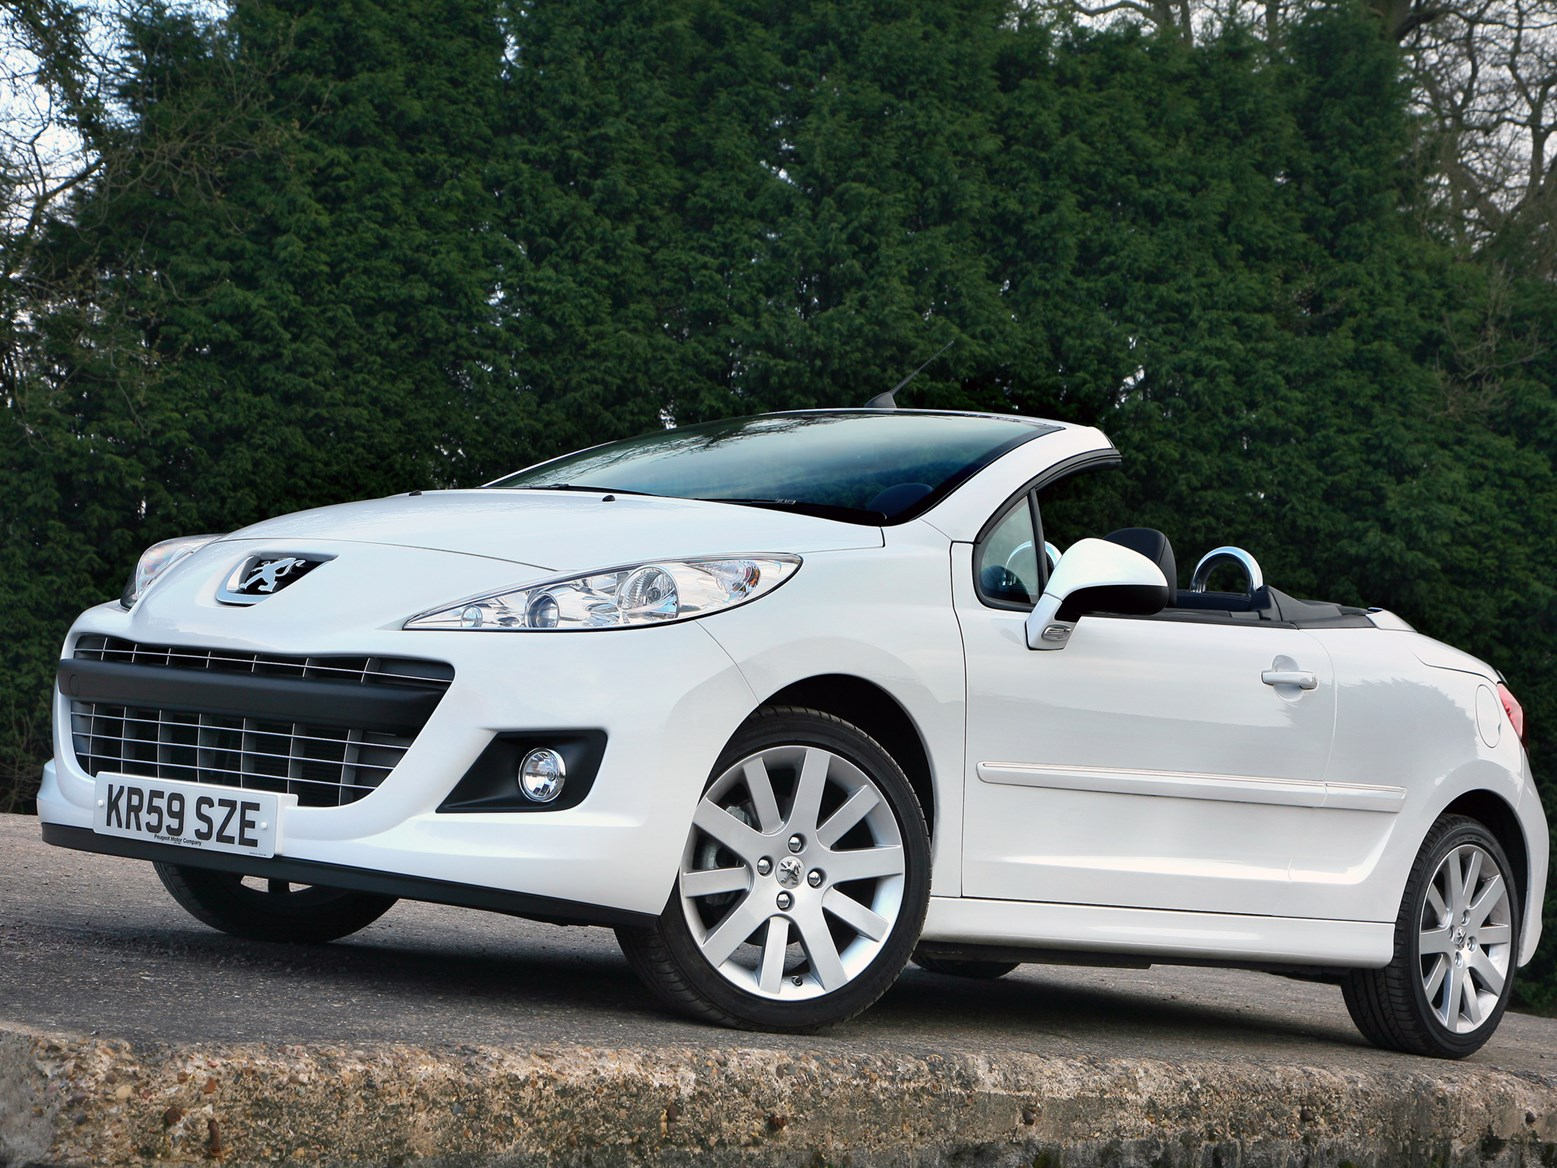 Best cheap used convertible cars for sale in the UK | Parkers